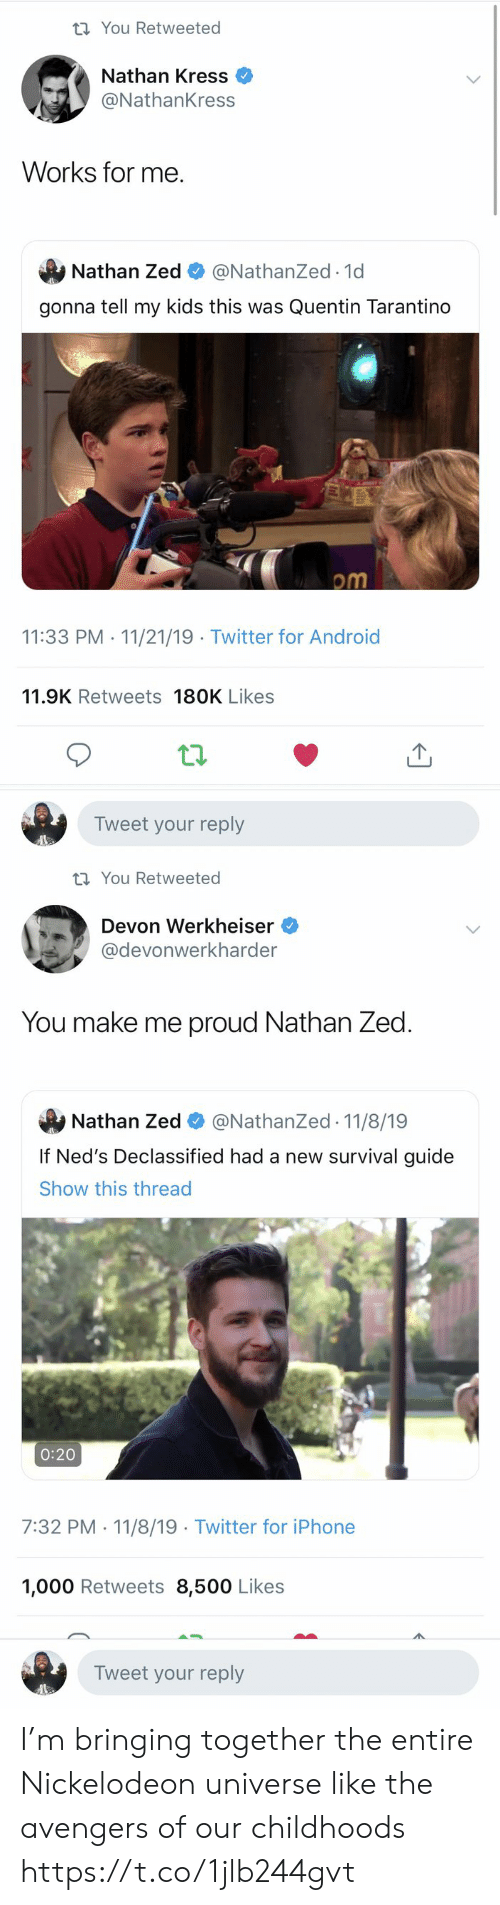 guide: t You Retweeted  Nathan Kress  @NathanKress  Works for me  Nathan Zed  @NathanZed.1d  gonna tell my kids this was Quentin Tarantino  om  11:33 PM 11/21/19 Twitter for Android  .  11.9K Retweets 180K Likes  Tweet your reply   t You Retweeted  Devon Werkheiser  @devonwerkharder  You make me proud Nathan Zed  @NathanZed 11/8/19  Nathan Zed  If Ned's Declassified had a new survival guide  Show this thread  0:20  7:32 PM 11/8/19 Twitter for iPhone  1,000 Retweets 8,500 Likes  Tweet your reply I'm bringing together the entire Nickelodeon universe like the avengers of our childhoods https://t.co/1jlb244gvt